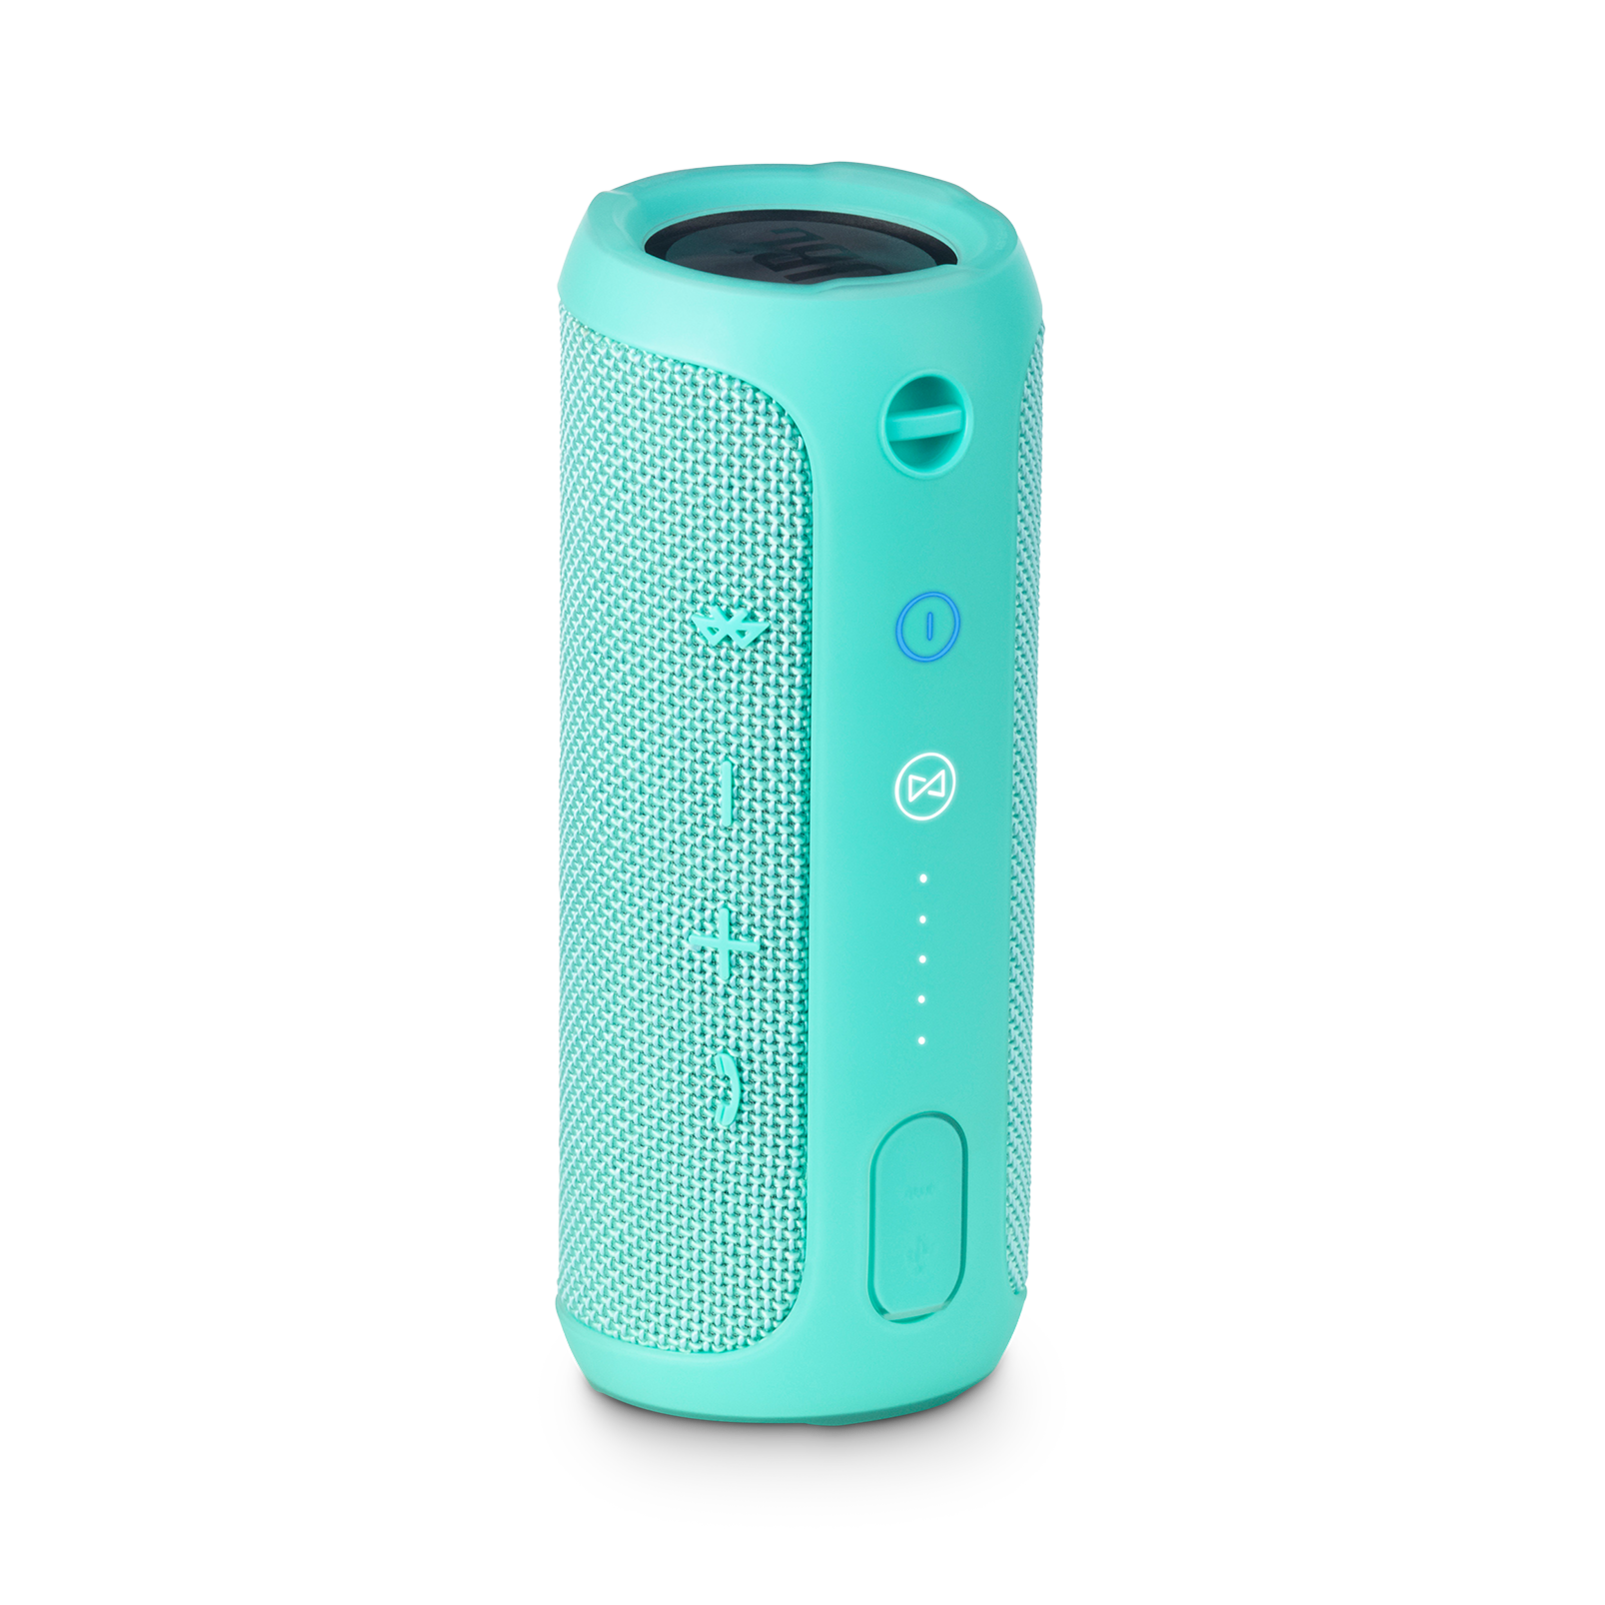 JBL Flip 3 - Teal - Splashproof portable Bluetooth speaker with powerful sound and speakerphone technology - Back